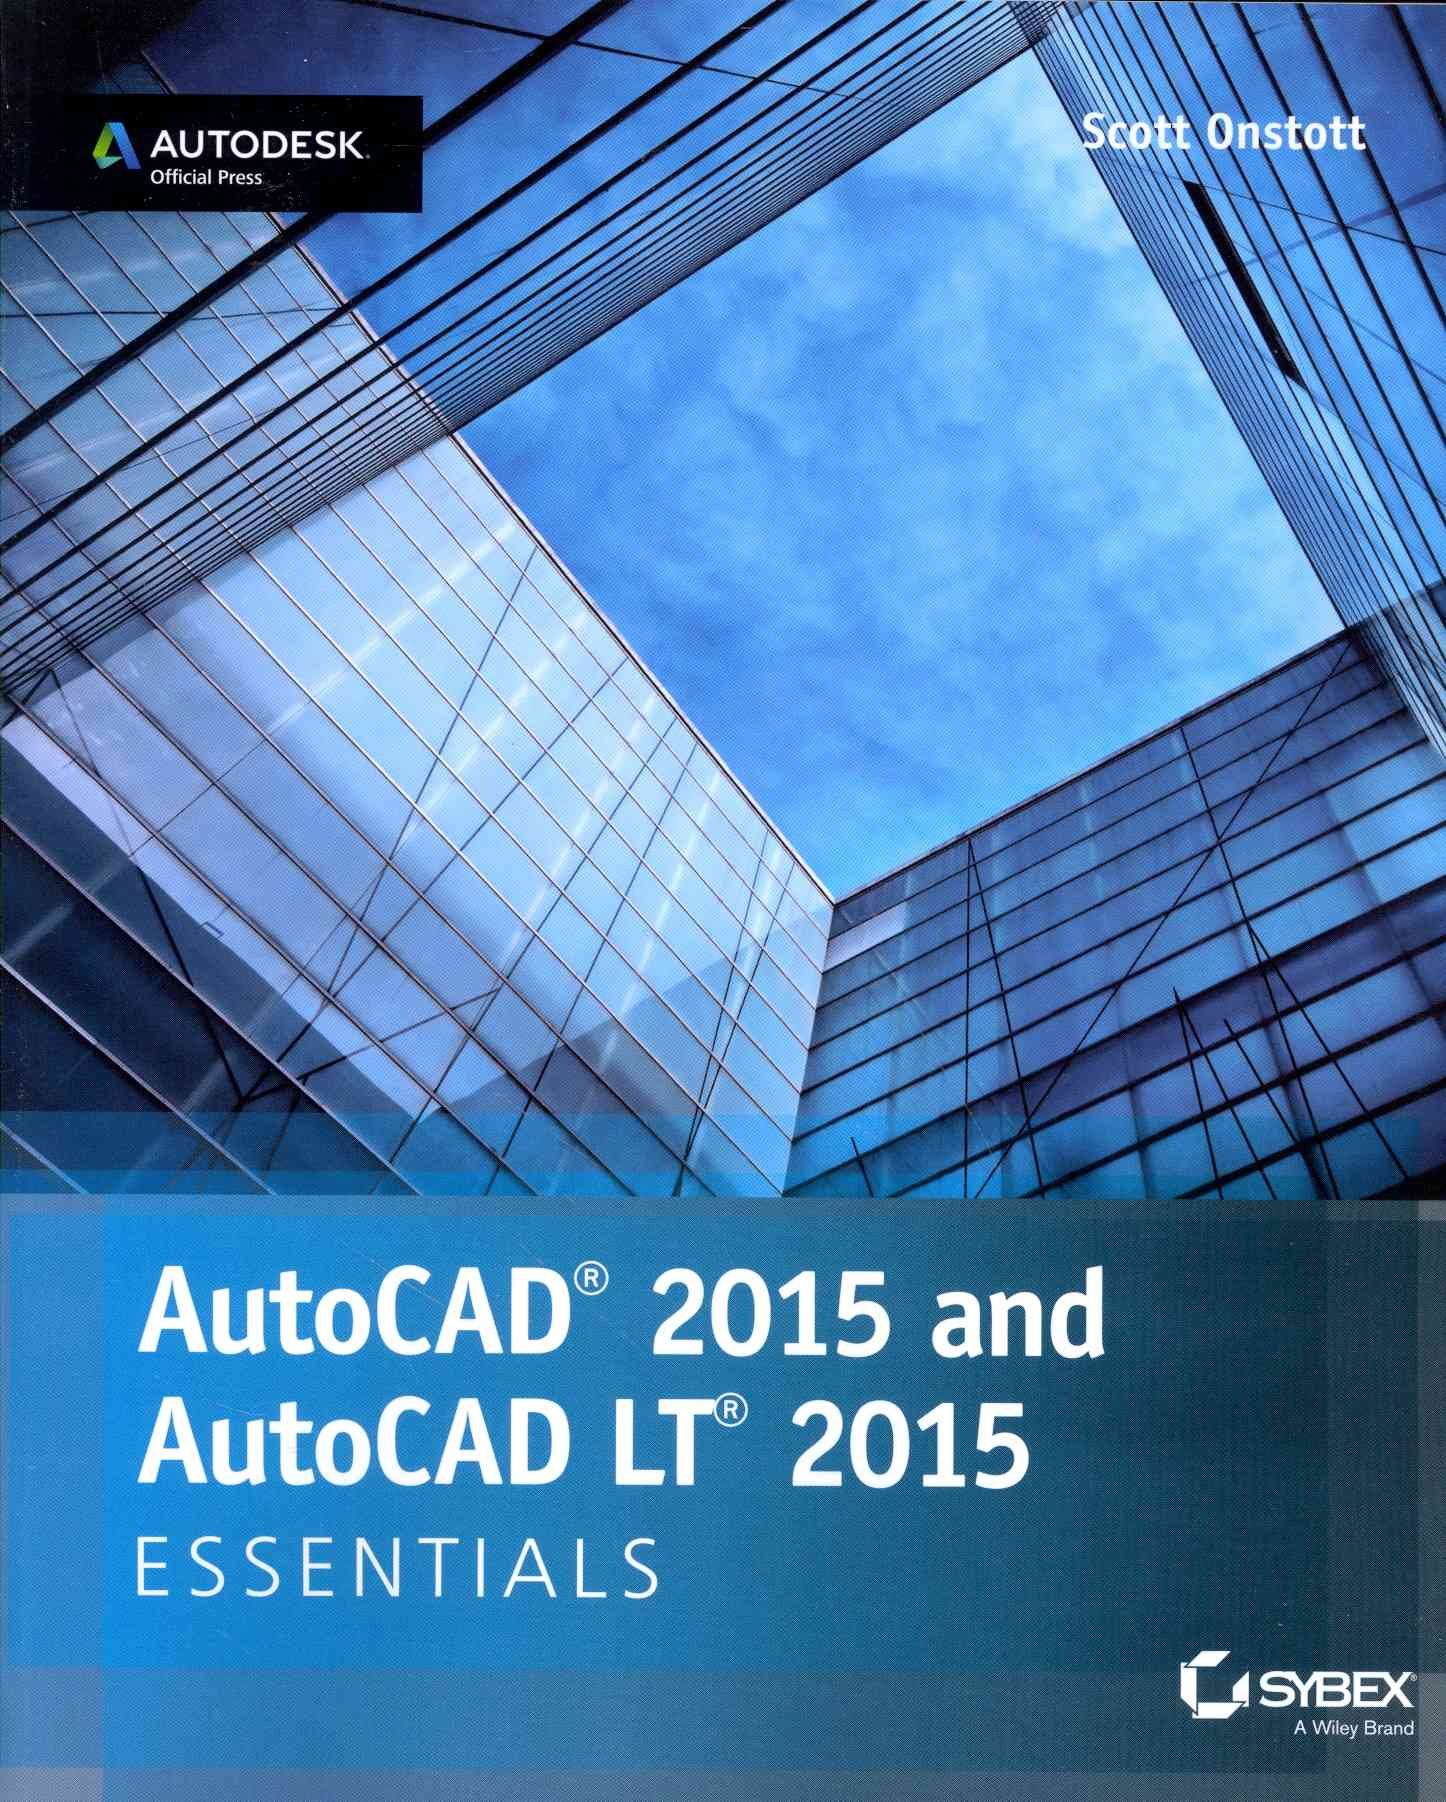 Autocad 2015 and Autocad Lt 2015 Essentials By Onstott, Scott